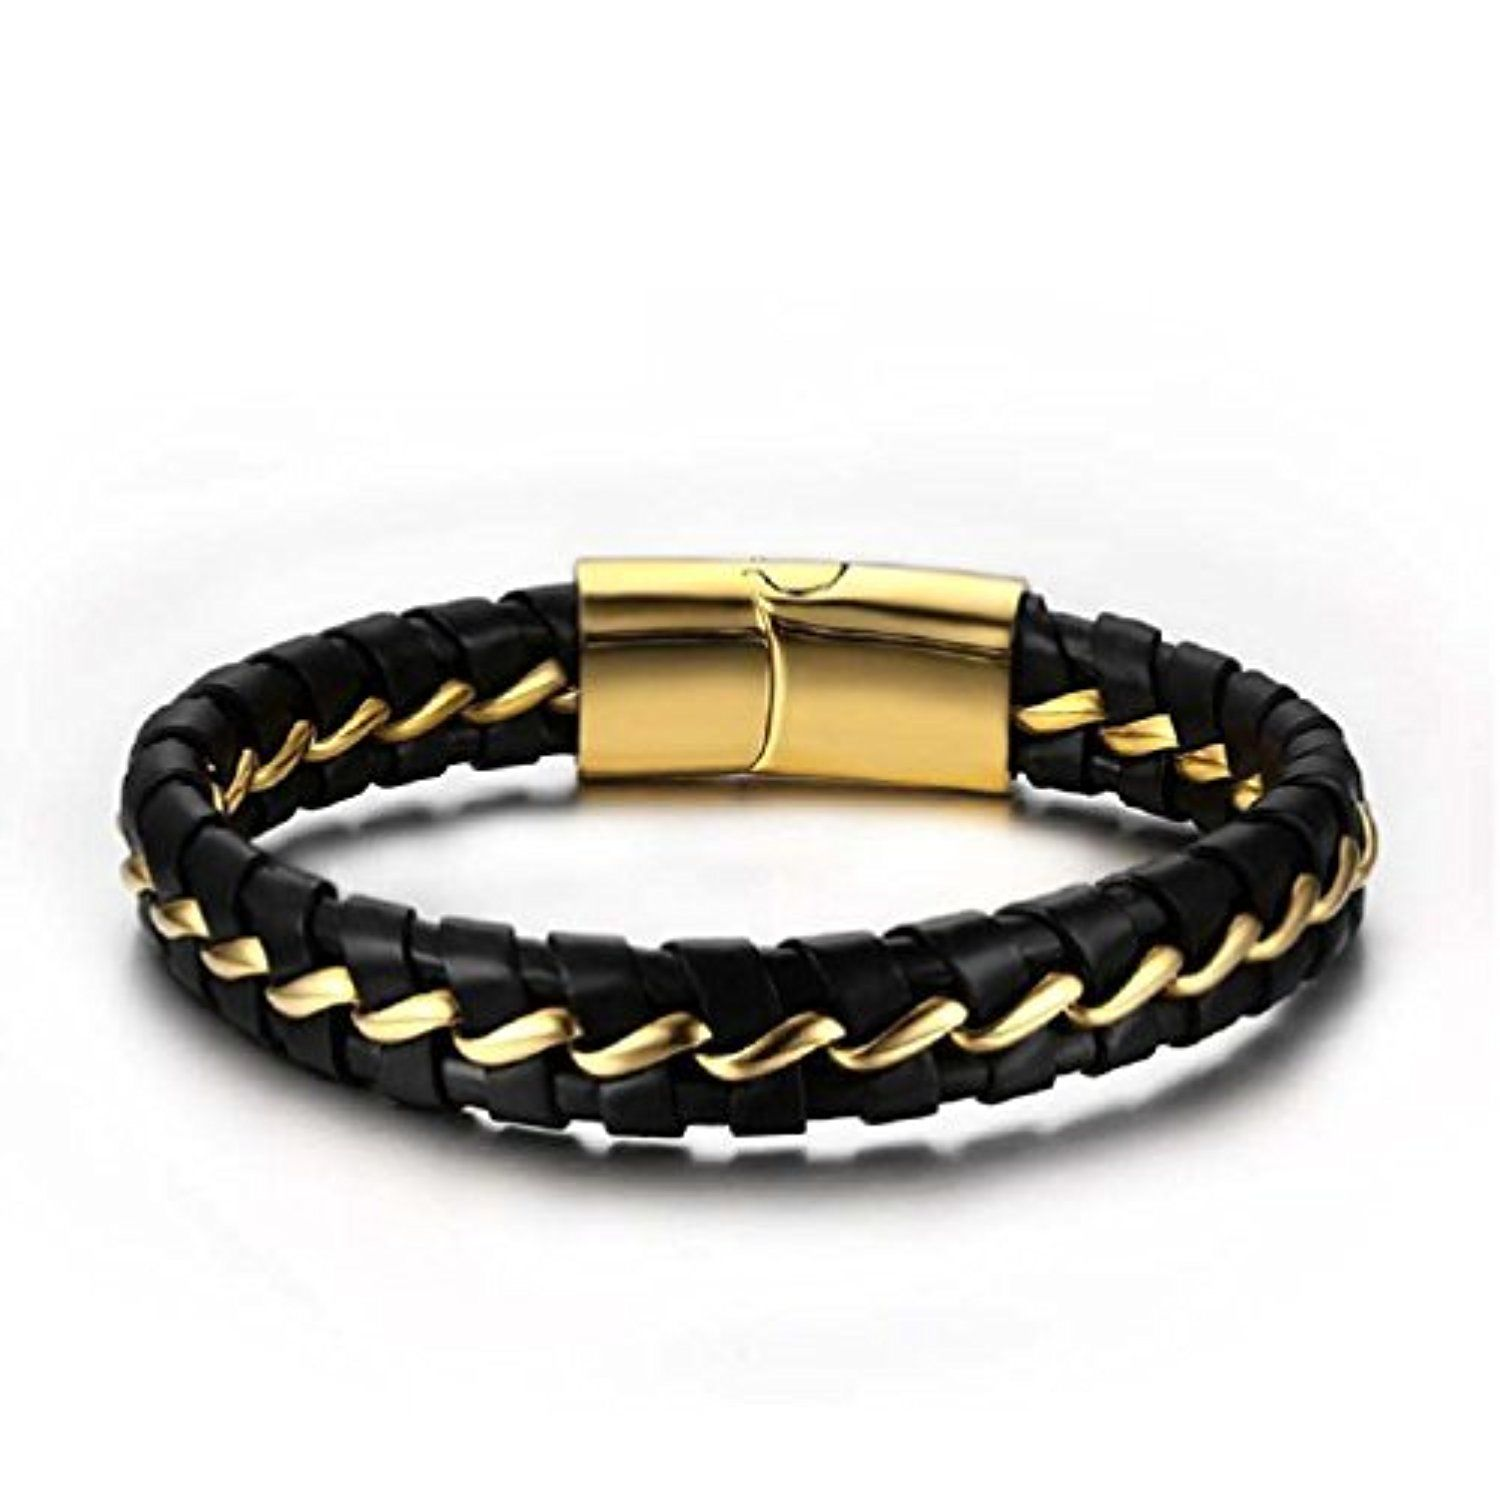 Topdamenus stainless steel gold plated genuine leather black